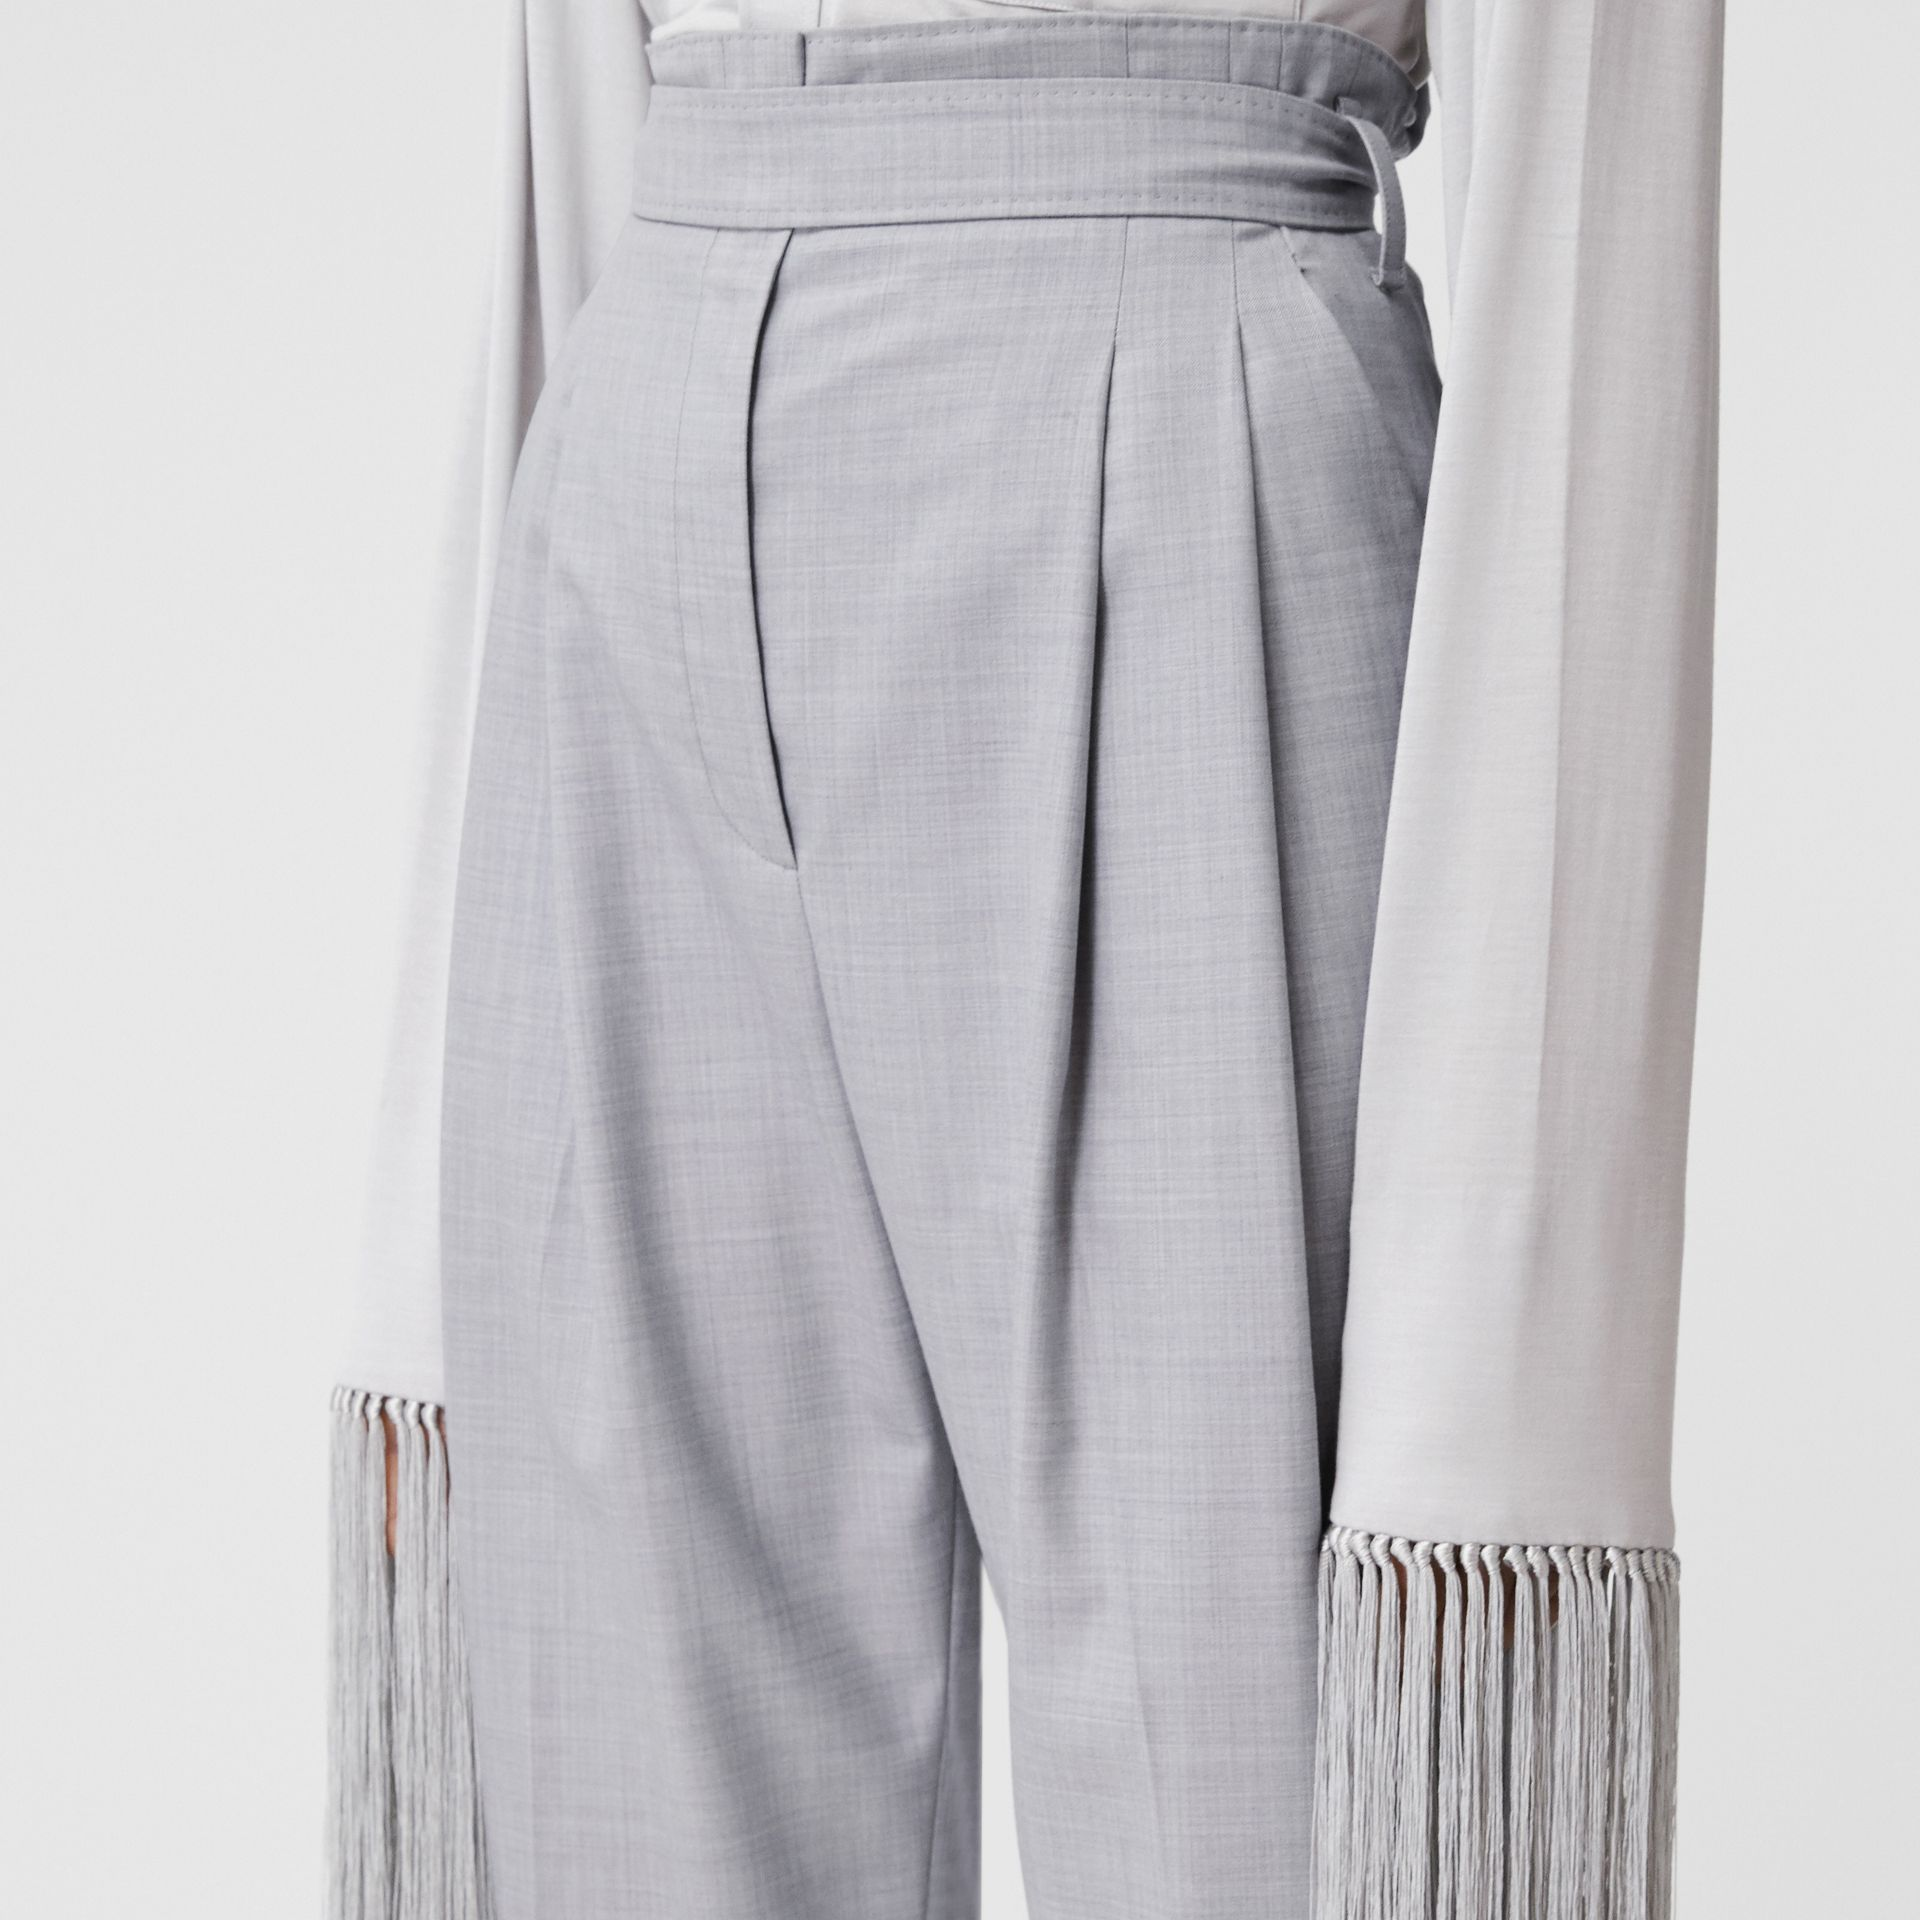 Cut-out Detail Wool Jersey Tailored Trousers in Cloud Grey - Women | Burberry Canada - gallery image 1